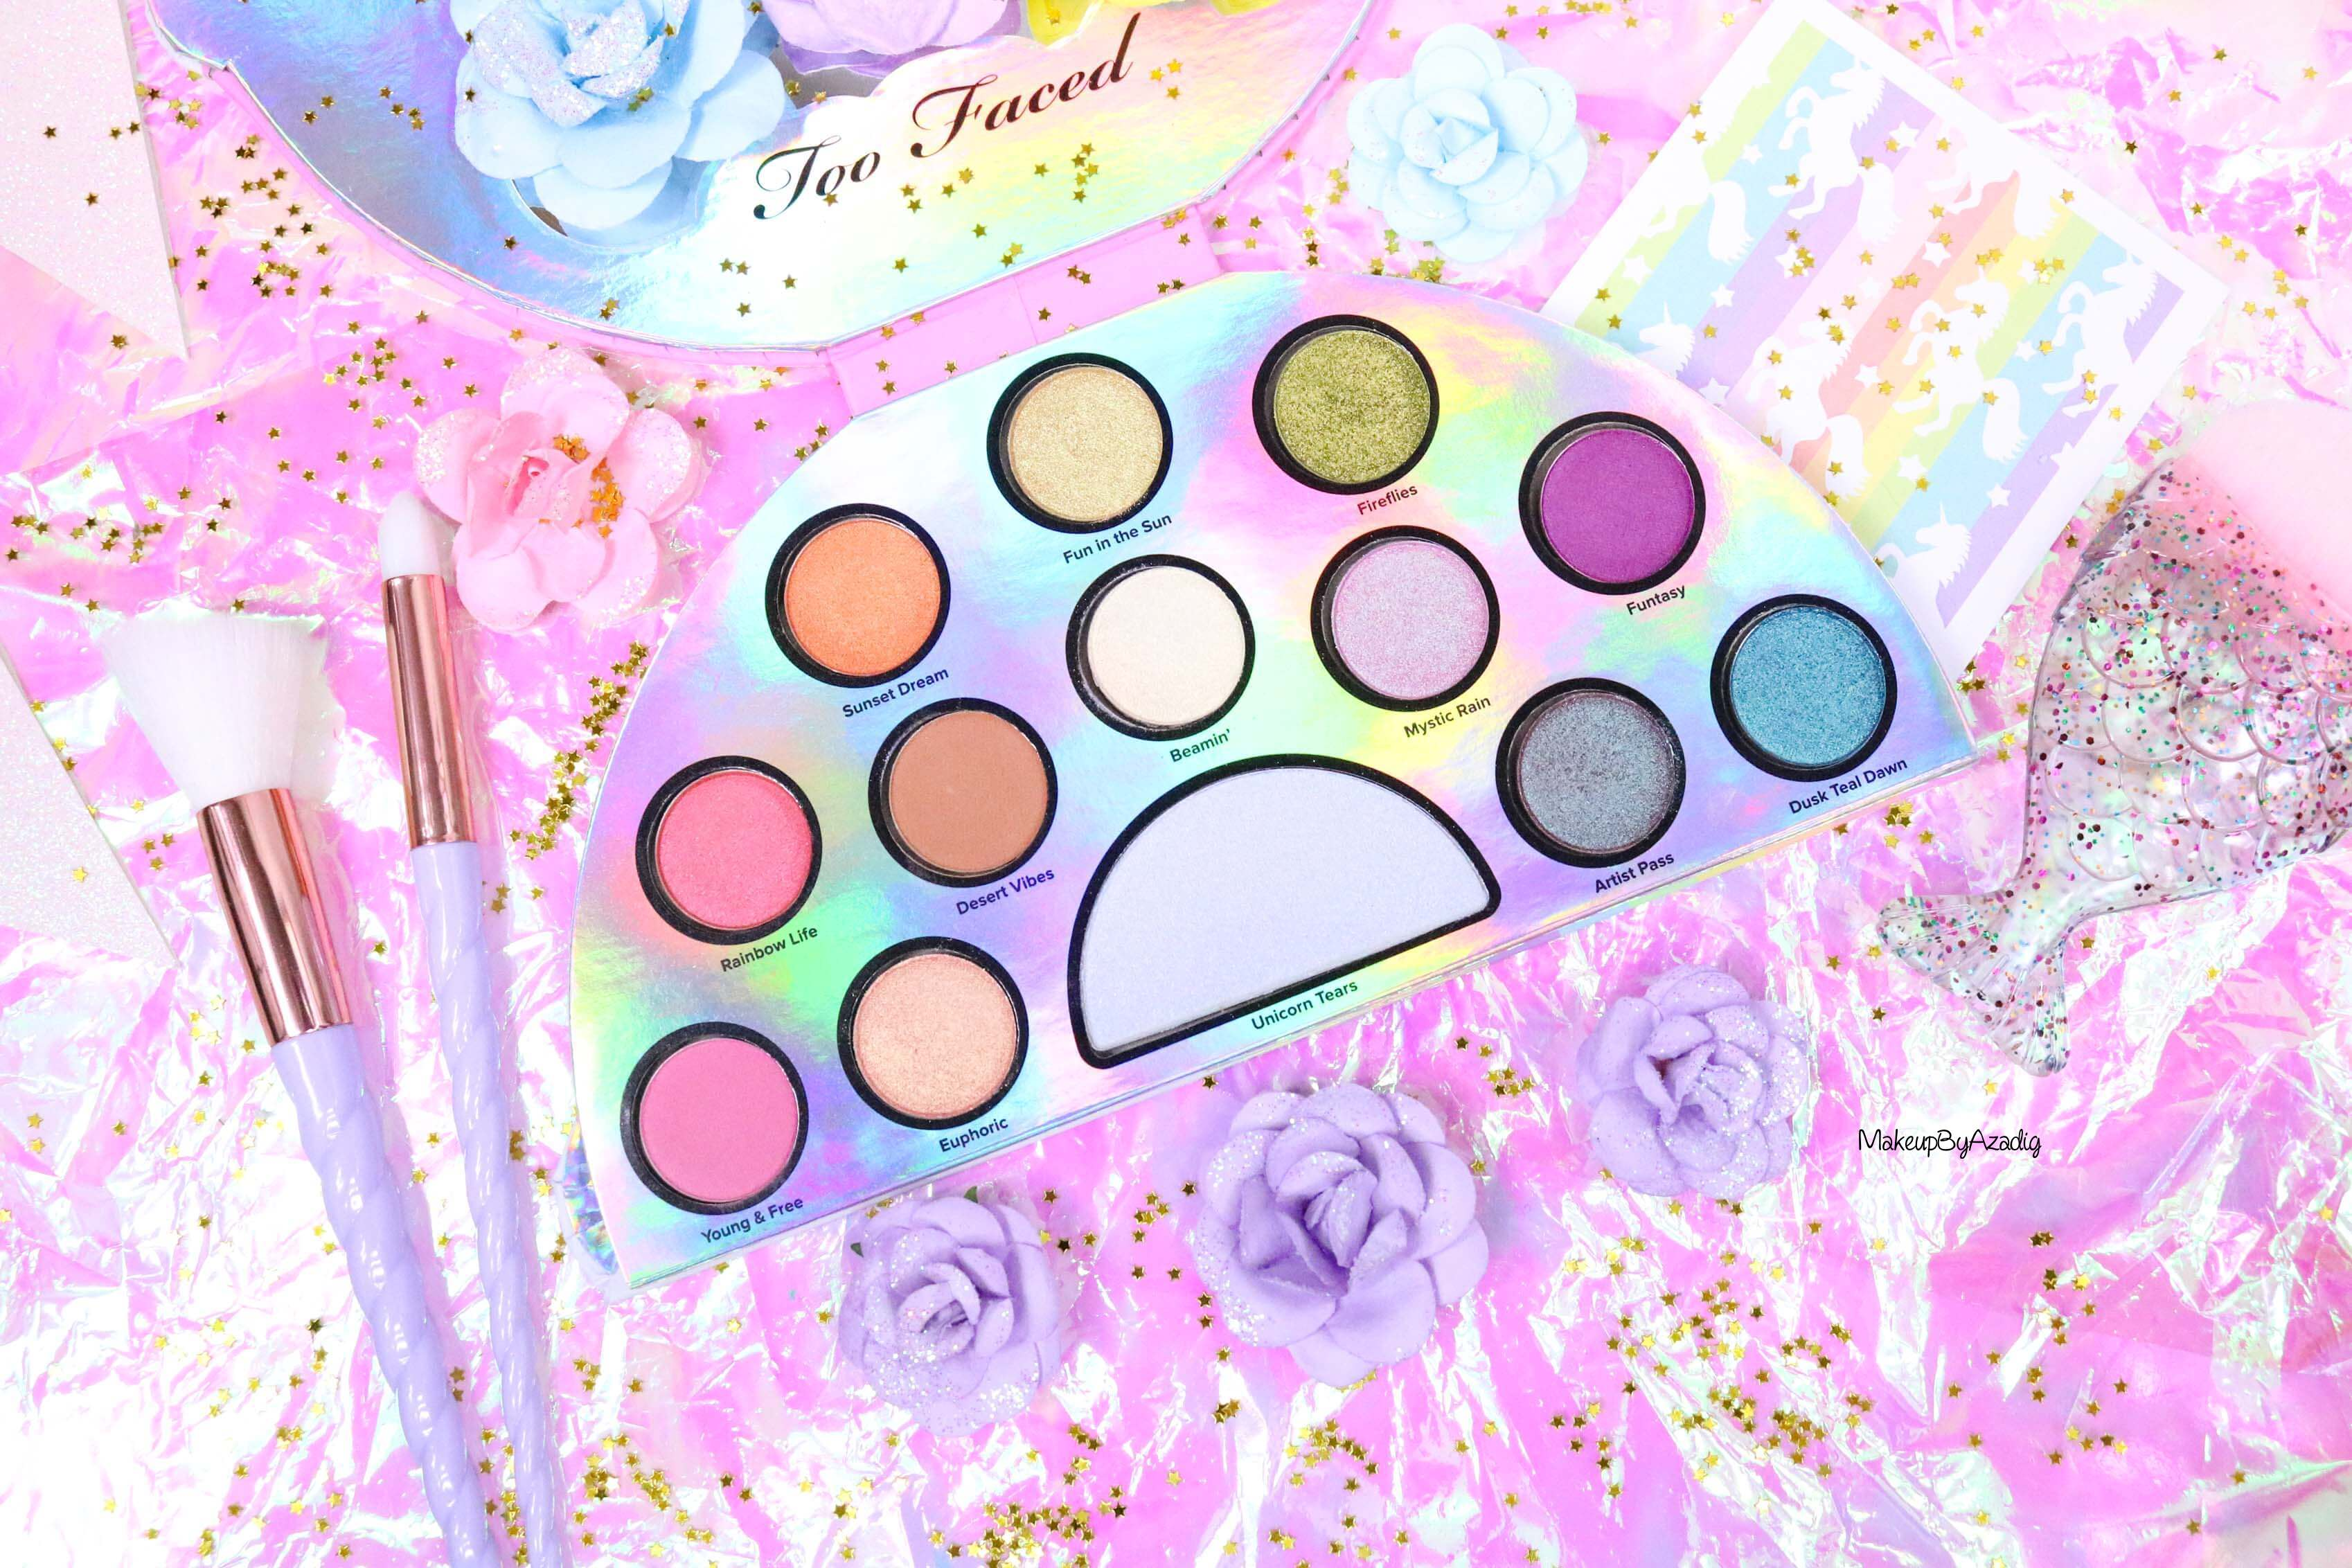 revue-palette-lifes-a-festival-too-faced-france-sephora-avis-prix-revue-makeupbyazadig-collection-licorne-magique